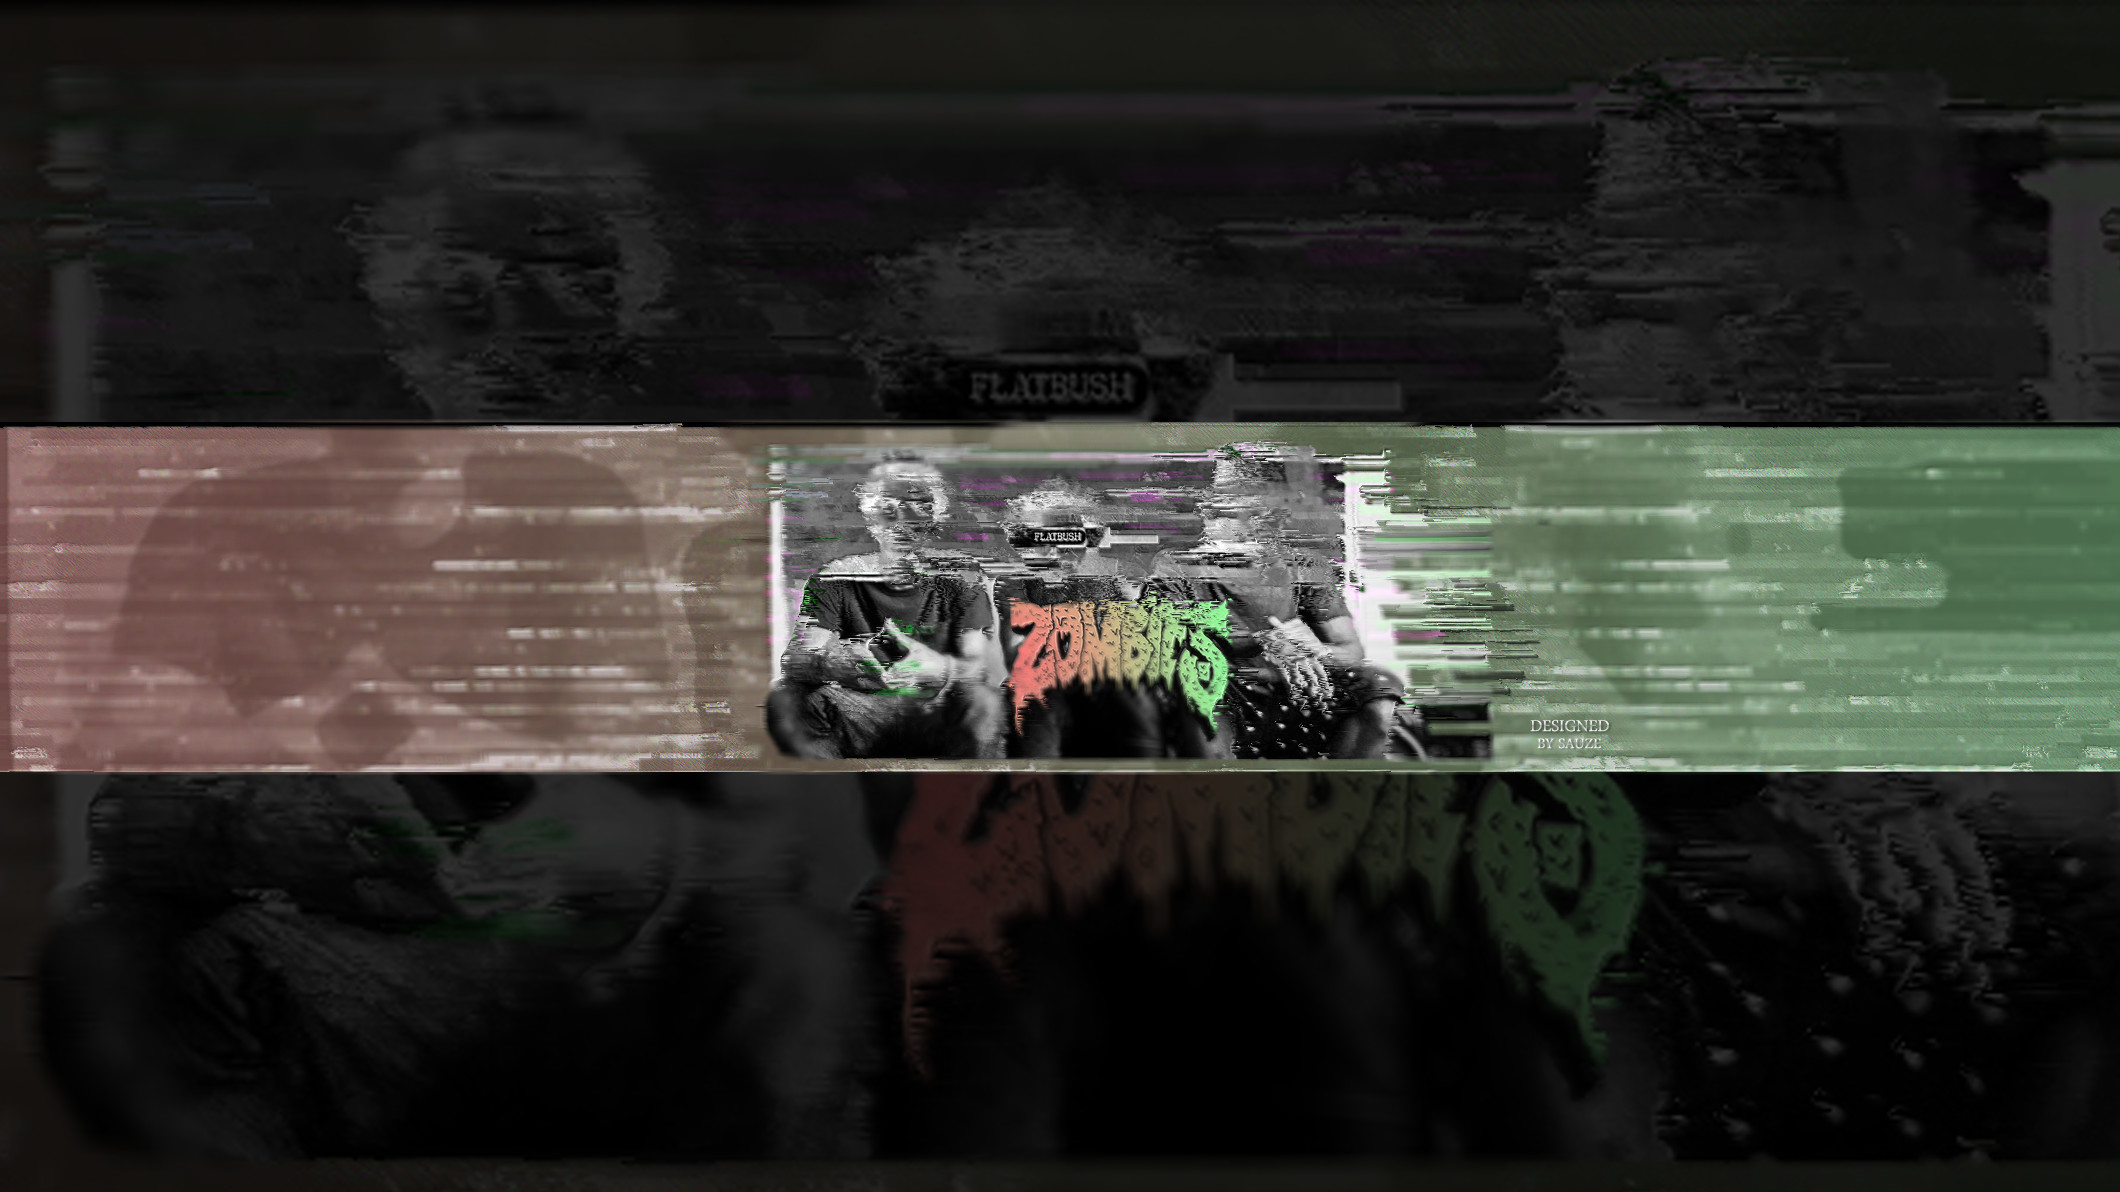 … Flatbush Zombies – Glitch YouTube Banner by SaperSpoas